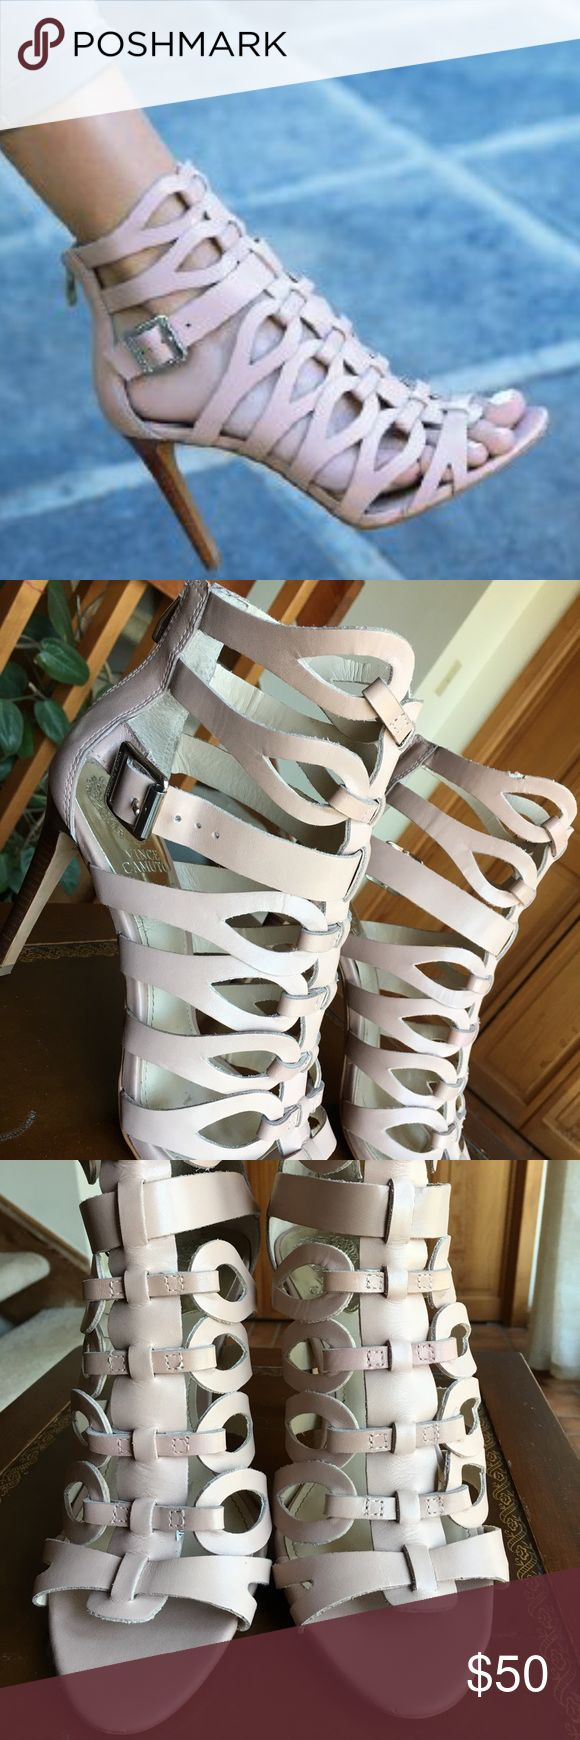 Vince California blush color caged heel sandals Gently worn Vince California blush color caged heel sandals. Worn 3 times. Soft leather. Vince Camuto Shoes Sandals